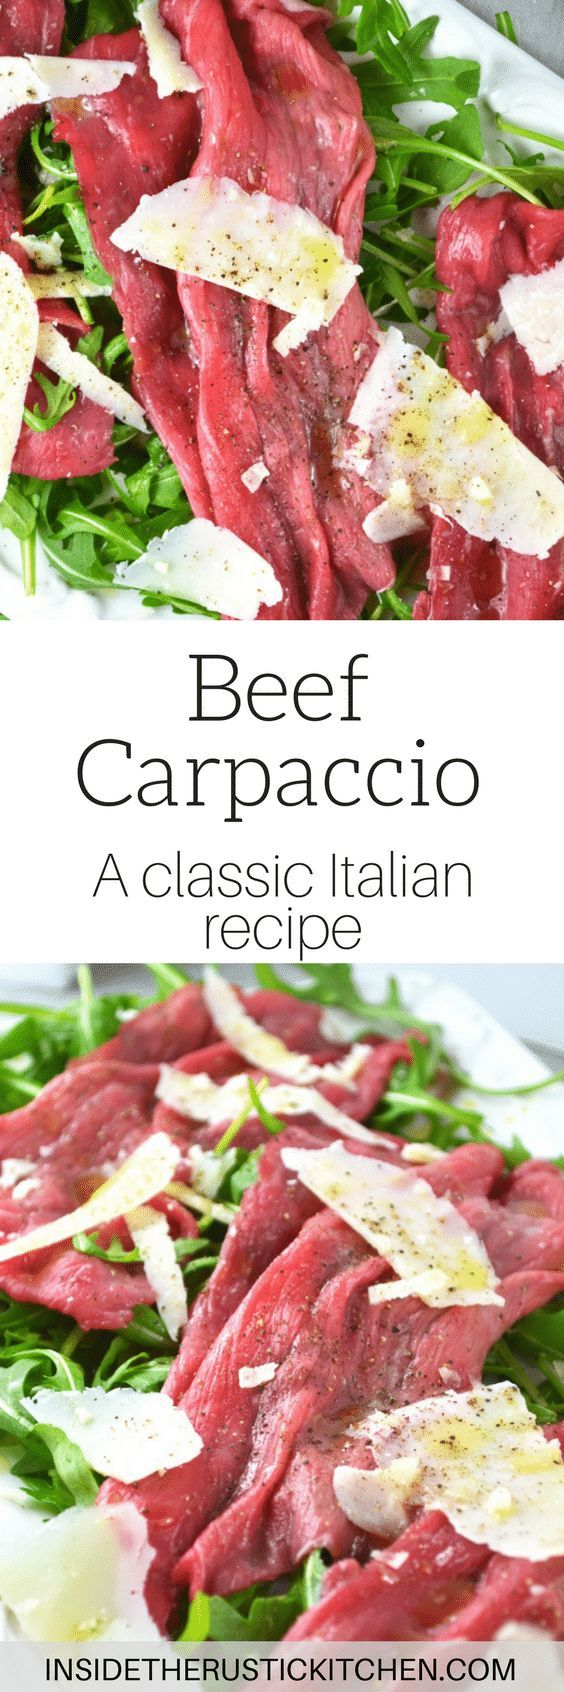 Beef Carpaccio is a classic Italian salad made with beef fillet, arugula, parmesan, lemon and olive oil. www.insidetherustickitchen.com